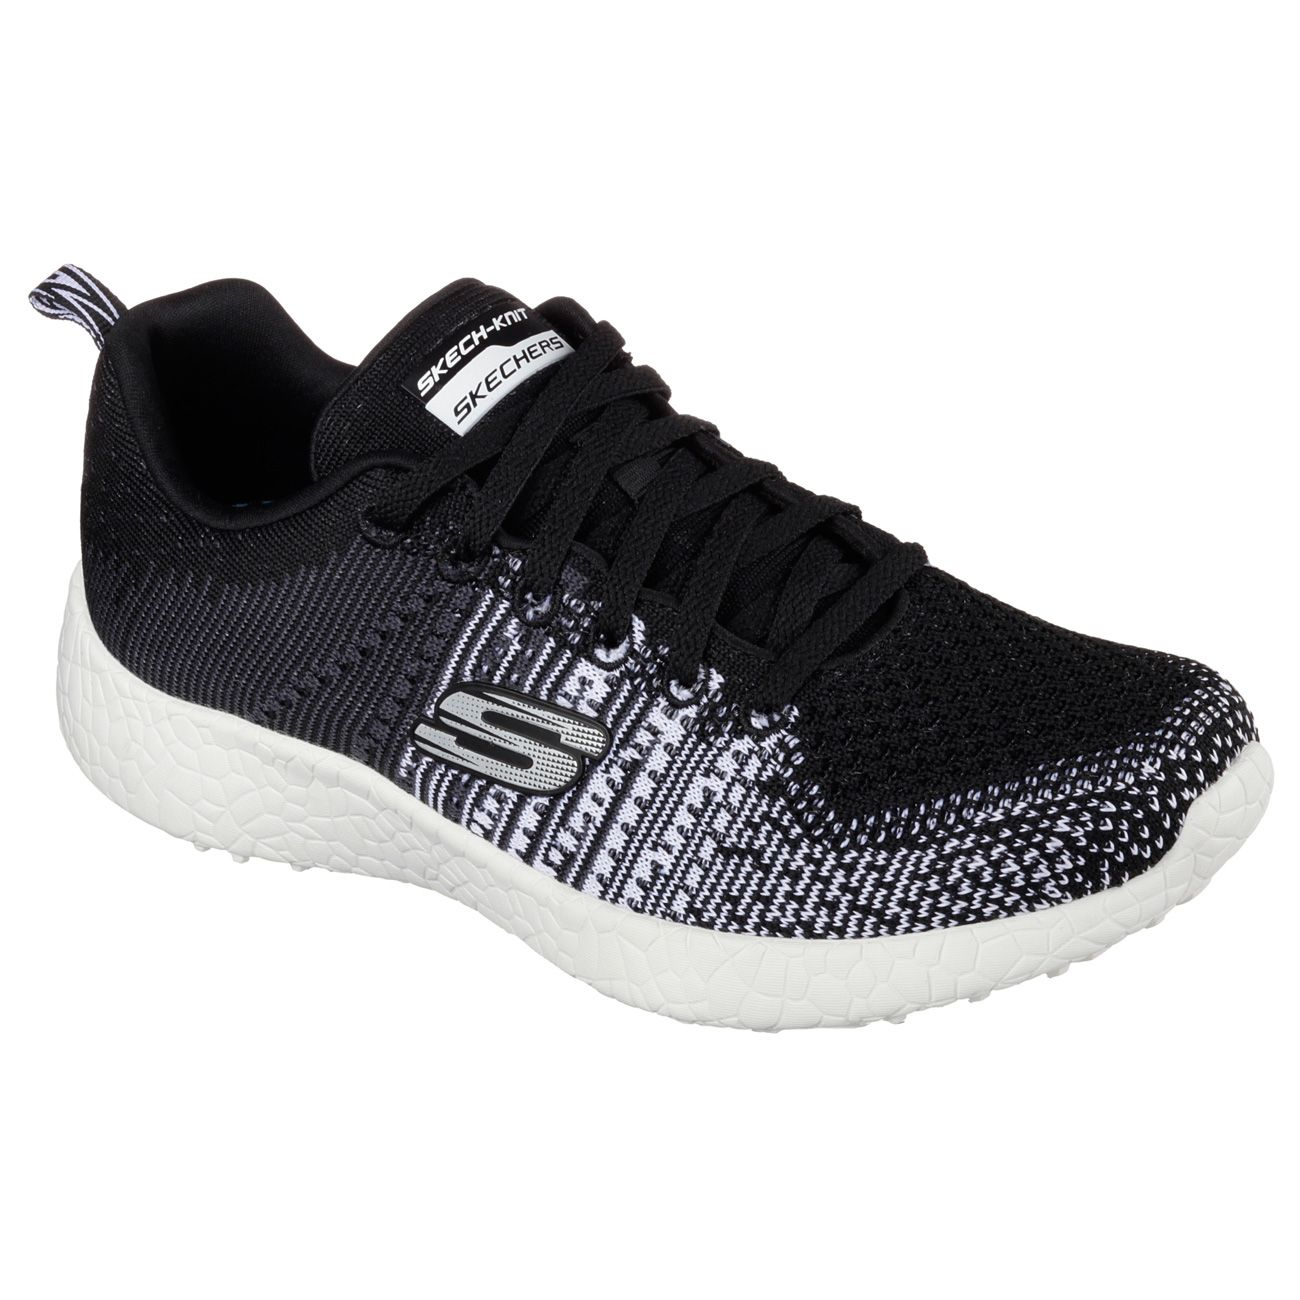 Skechers Sport Shoes Uk